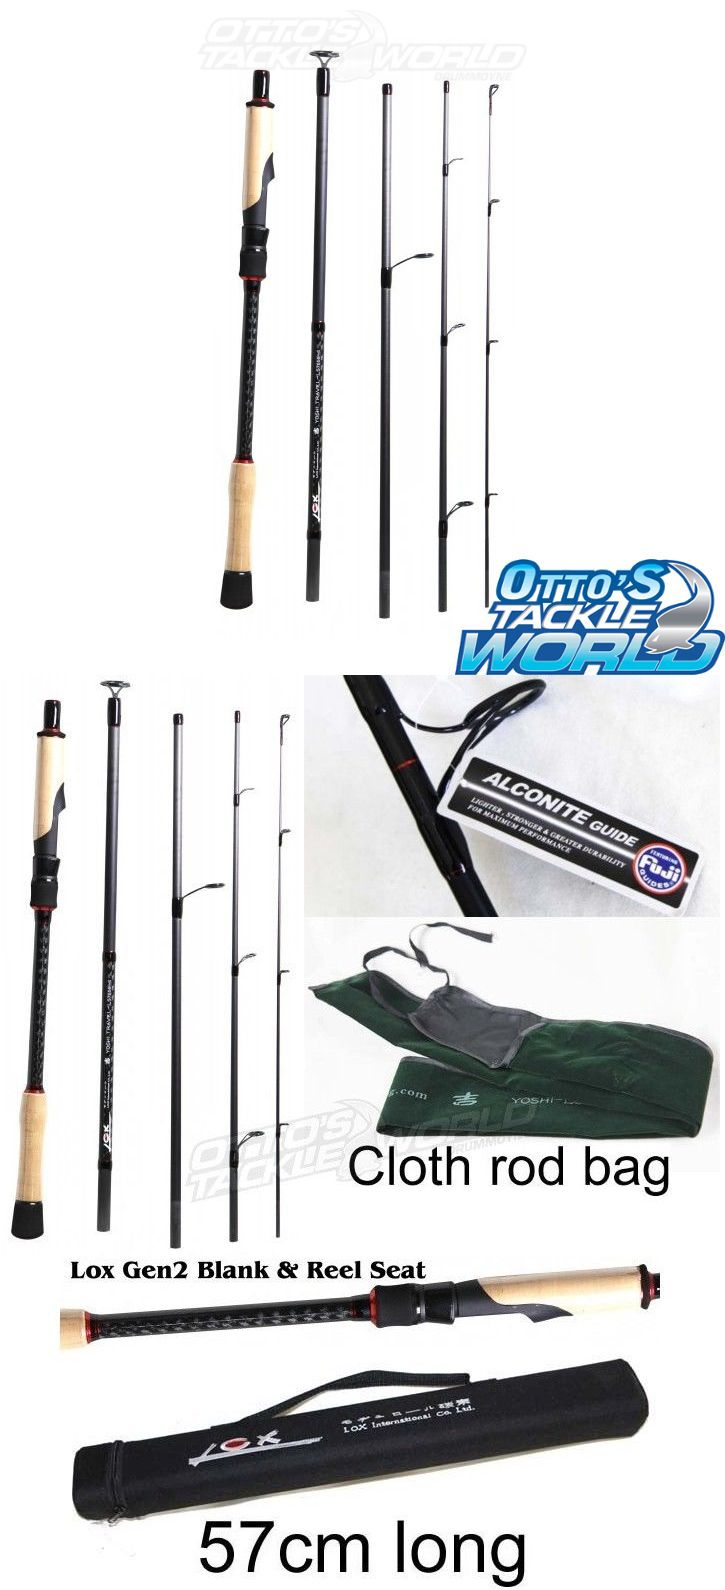 Travel Rods 179949: Lox Yoshi Travel Generation Ii Spin Rod Brand New At Otto S Tackle World -> BUY IT NOW ONLY: $319 on eBay!